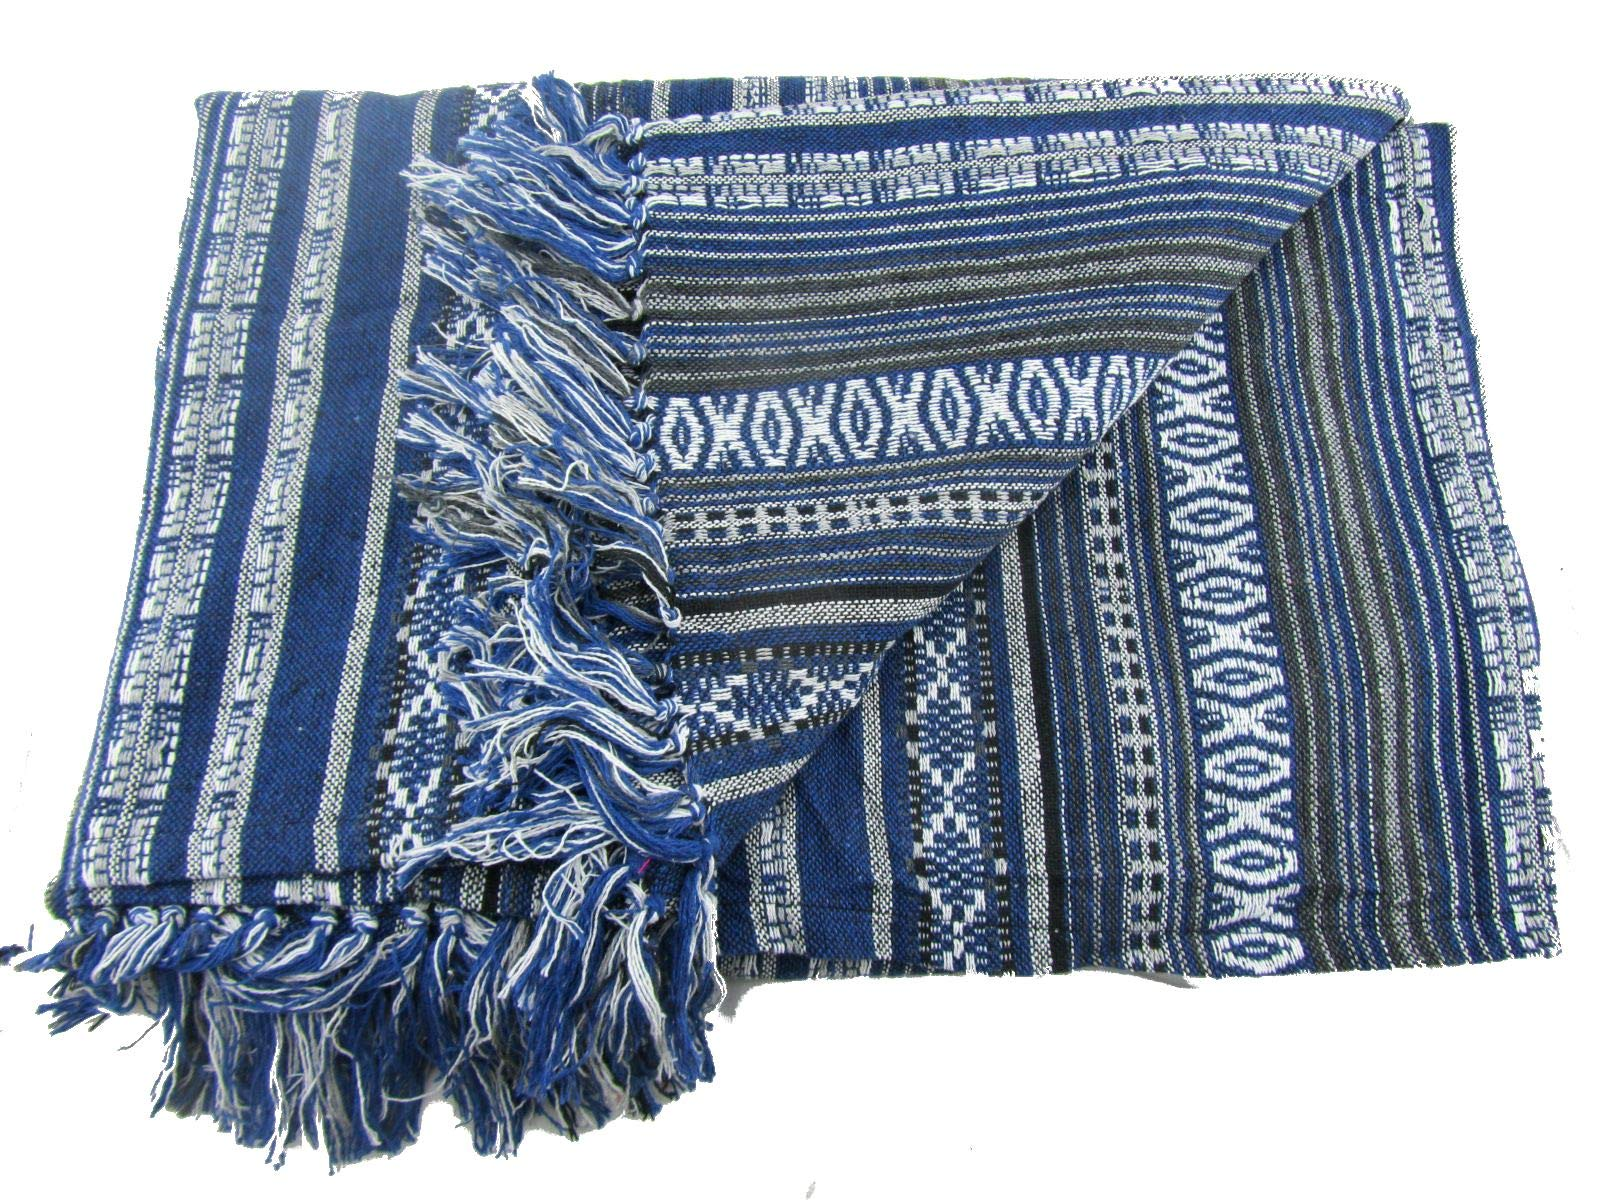 Large Handwoven Tribal Blanket Aztec Ikat Bedspread Queen Size 100% Cotton 90'' x 85'' by Blue Orchid (Image #3)